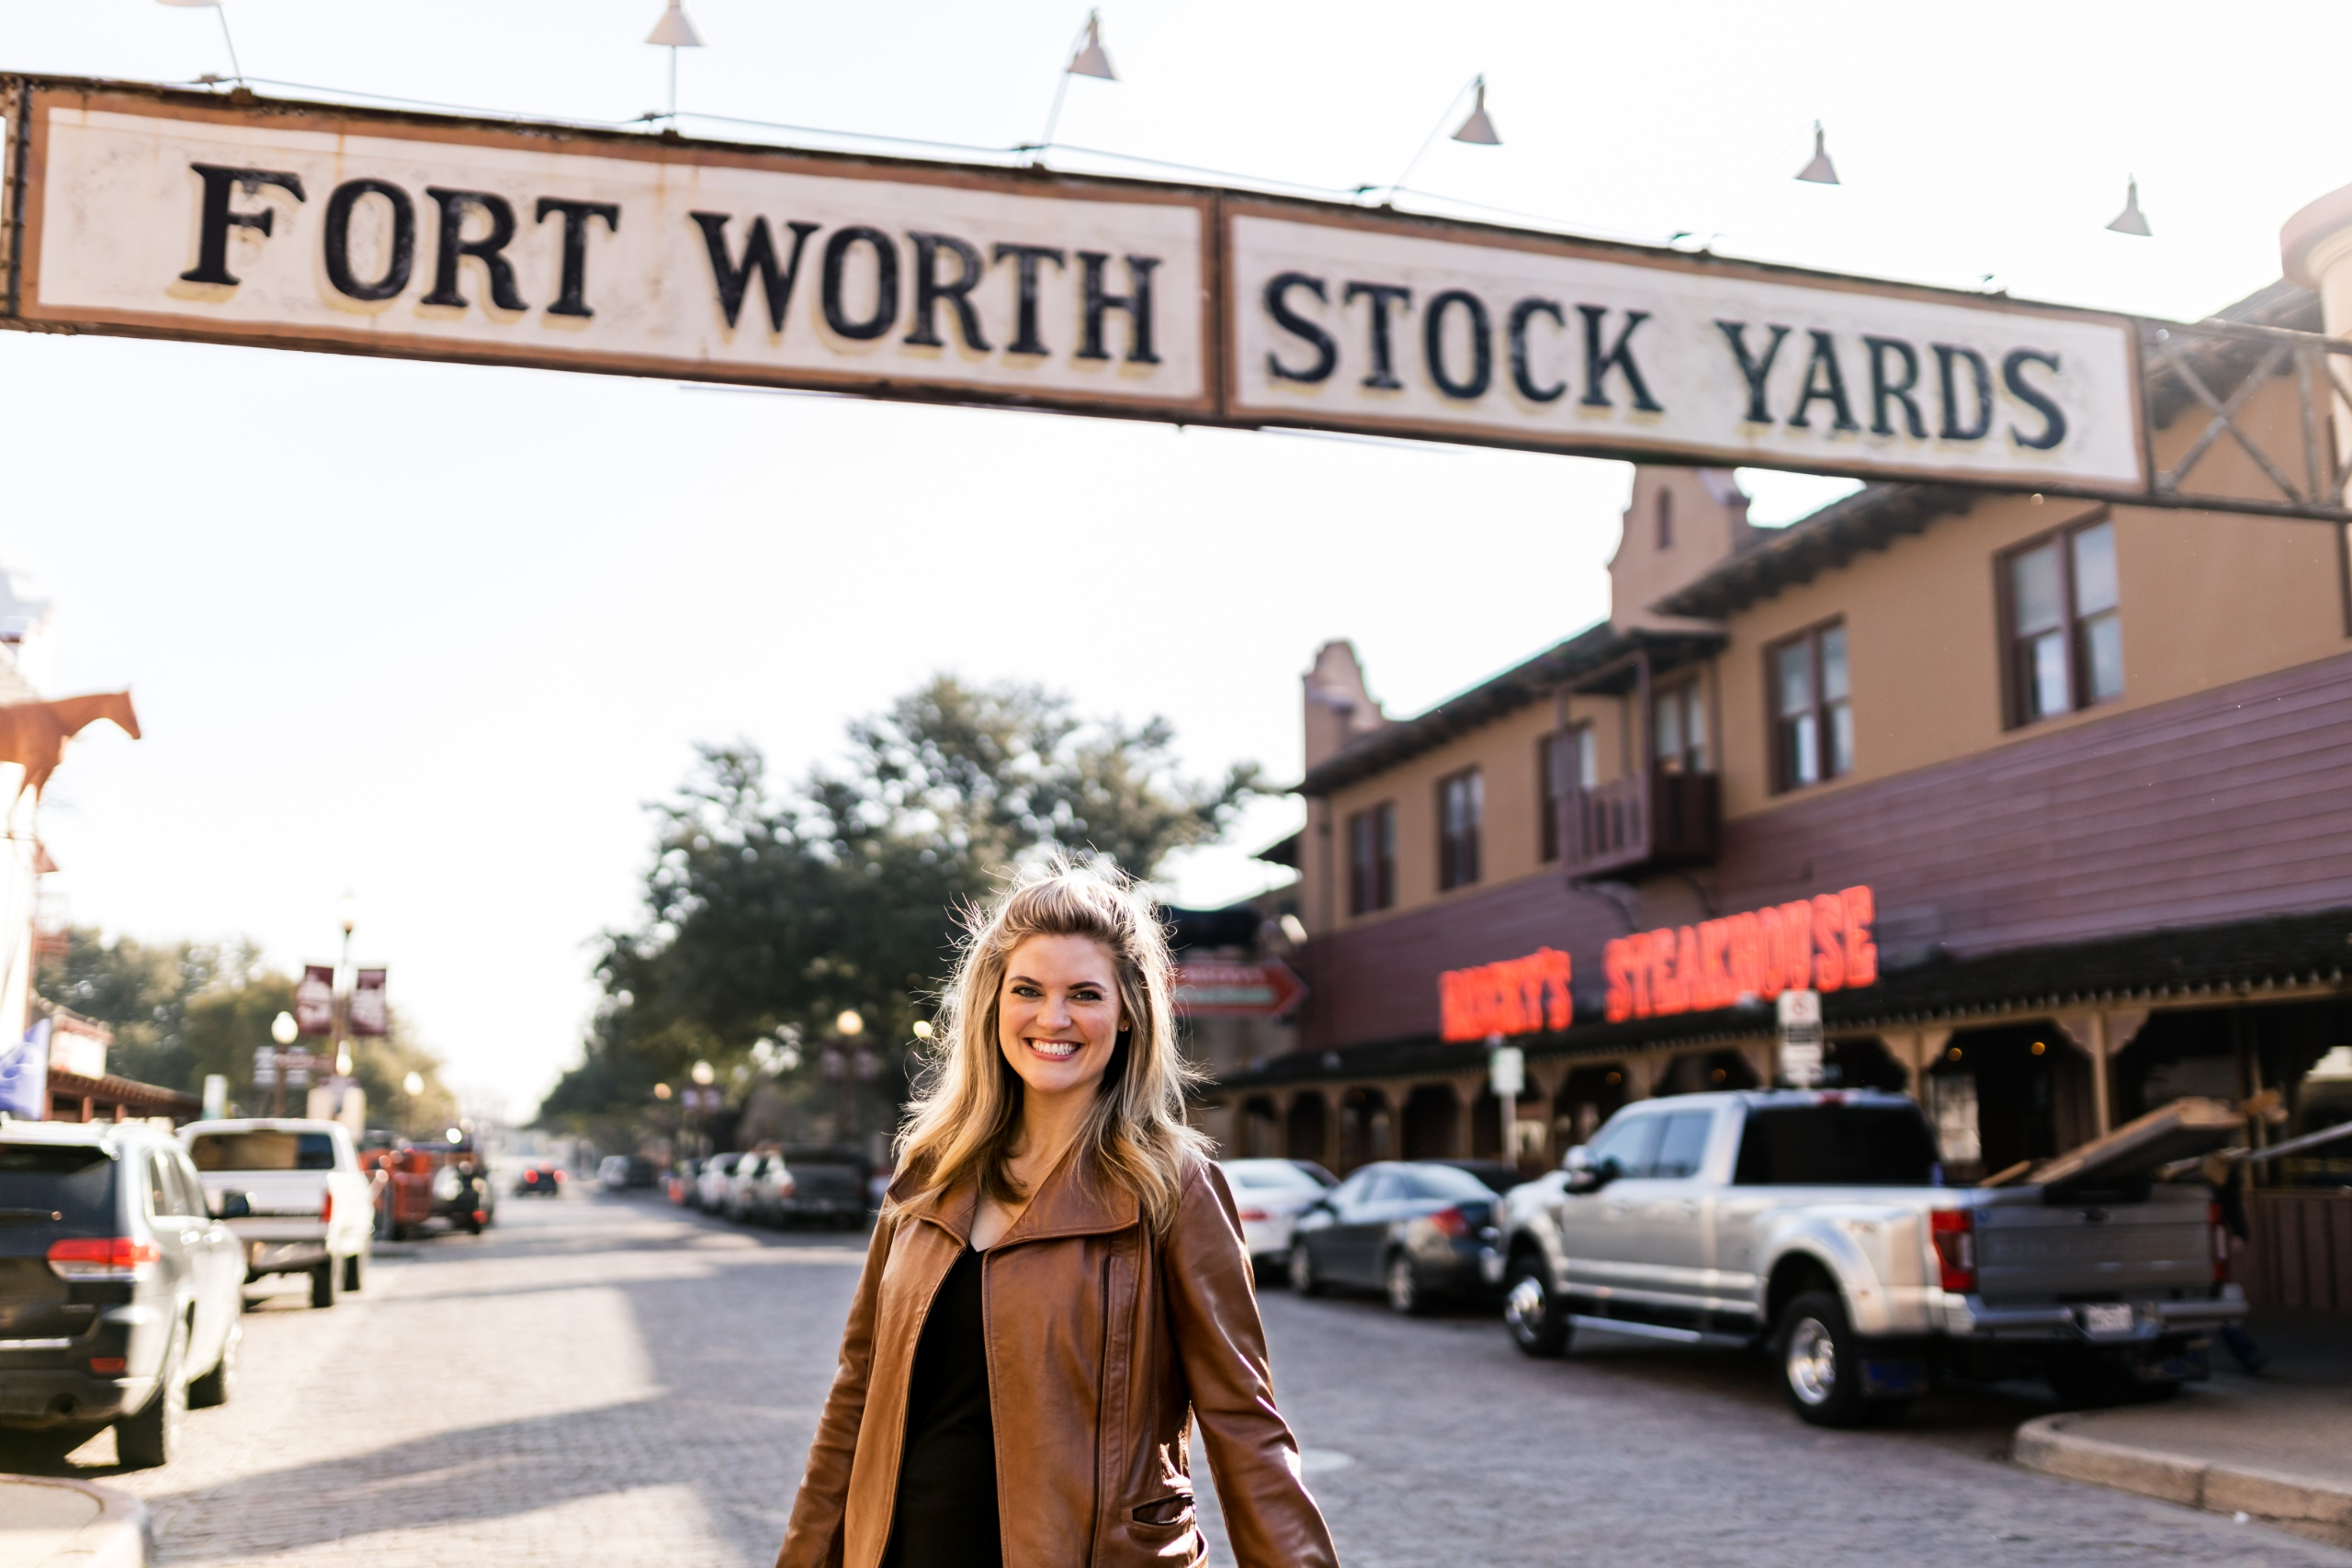 Michelle-at-Fort-Worth-Stockyards